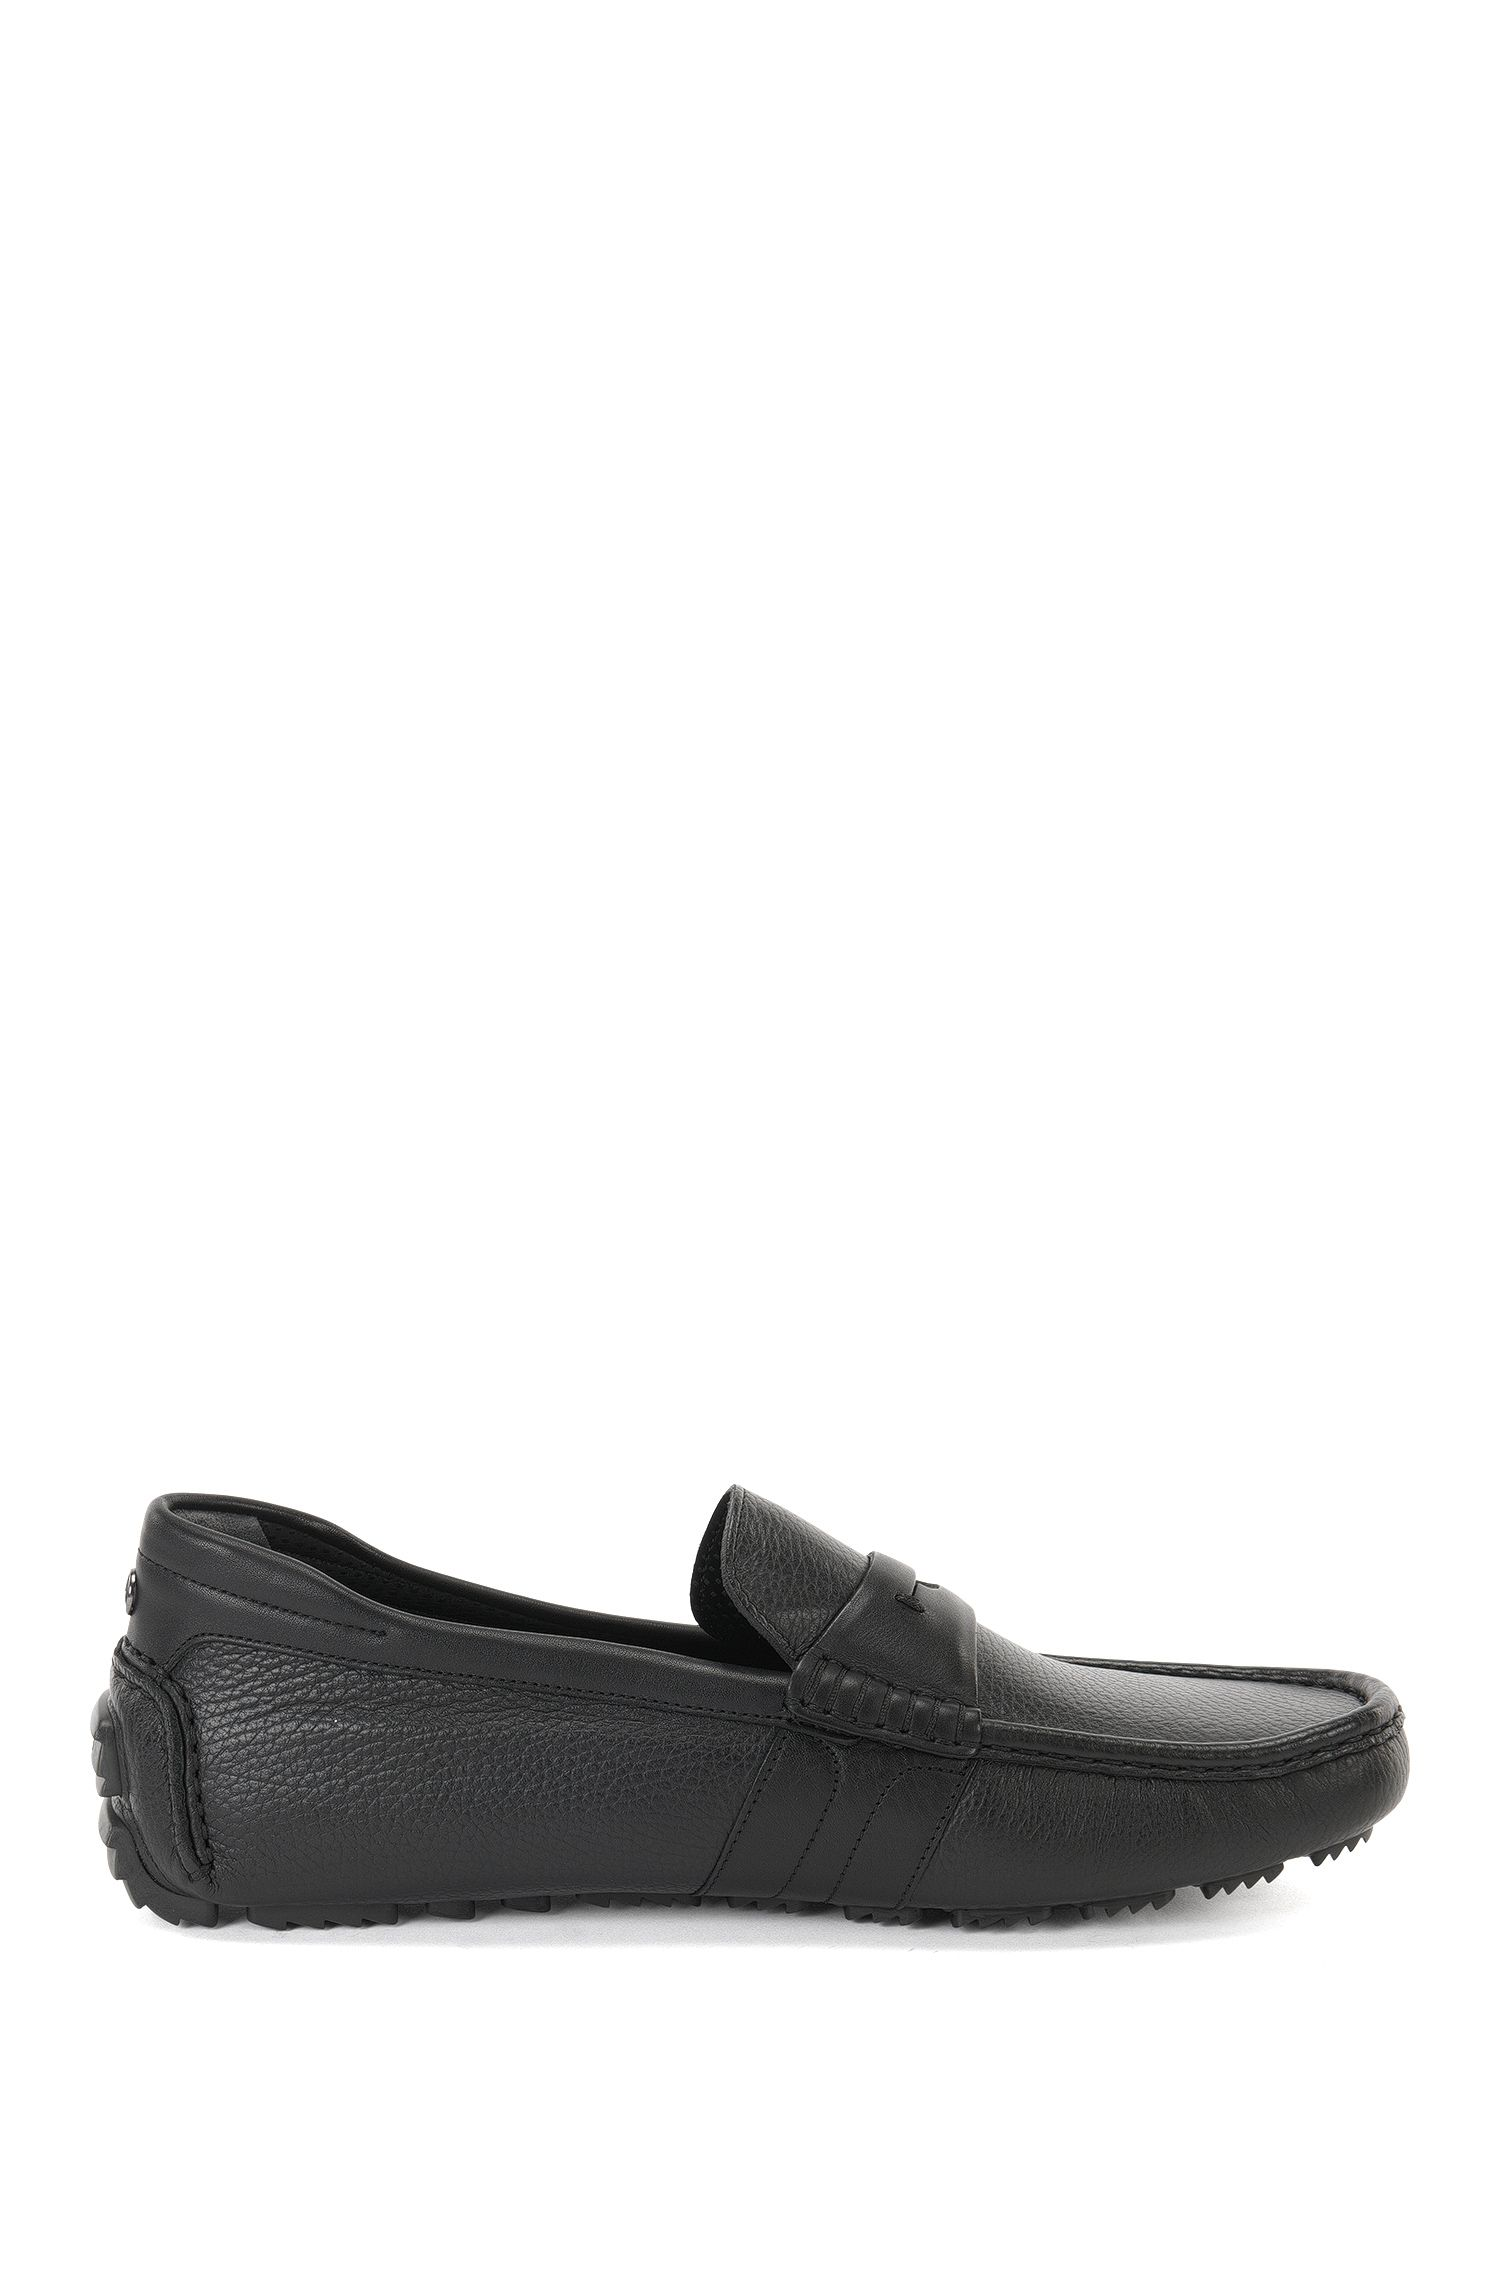 'Driver Mocc Gr' | Italian Leather Driving Moccasins